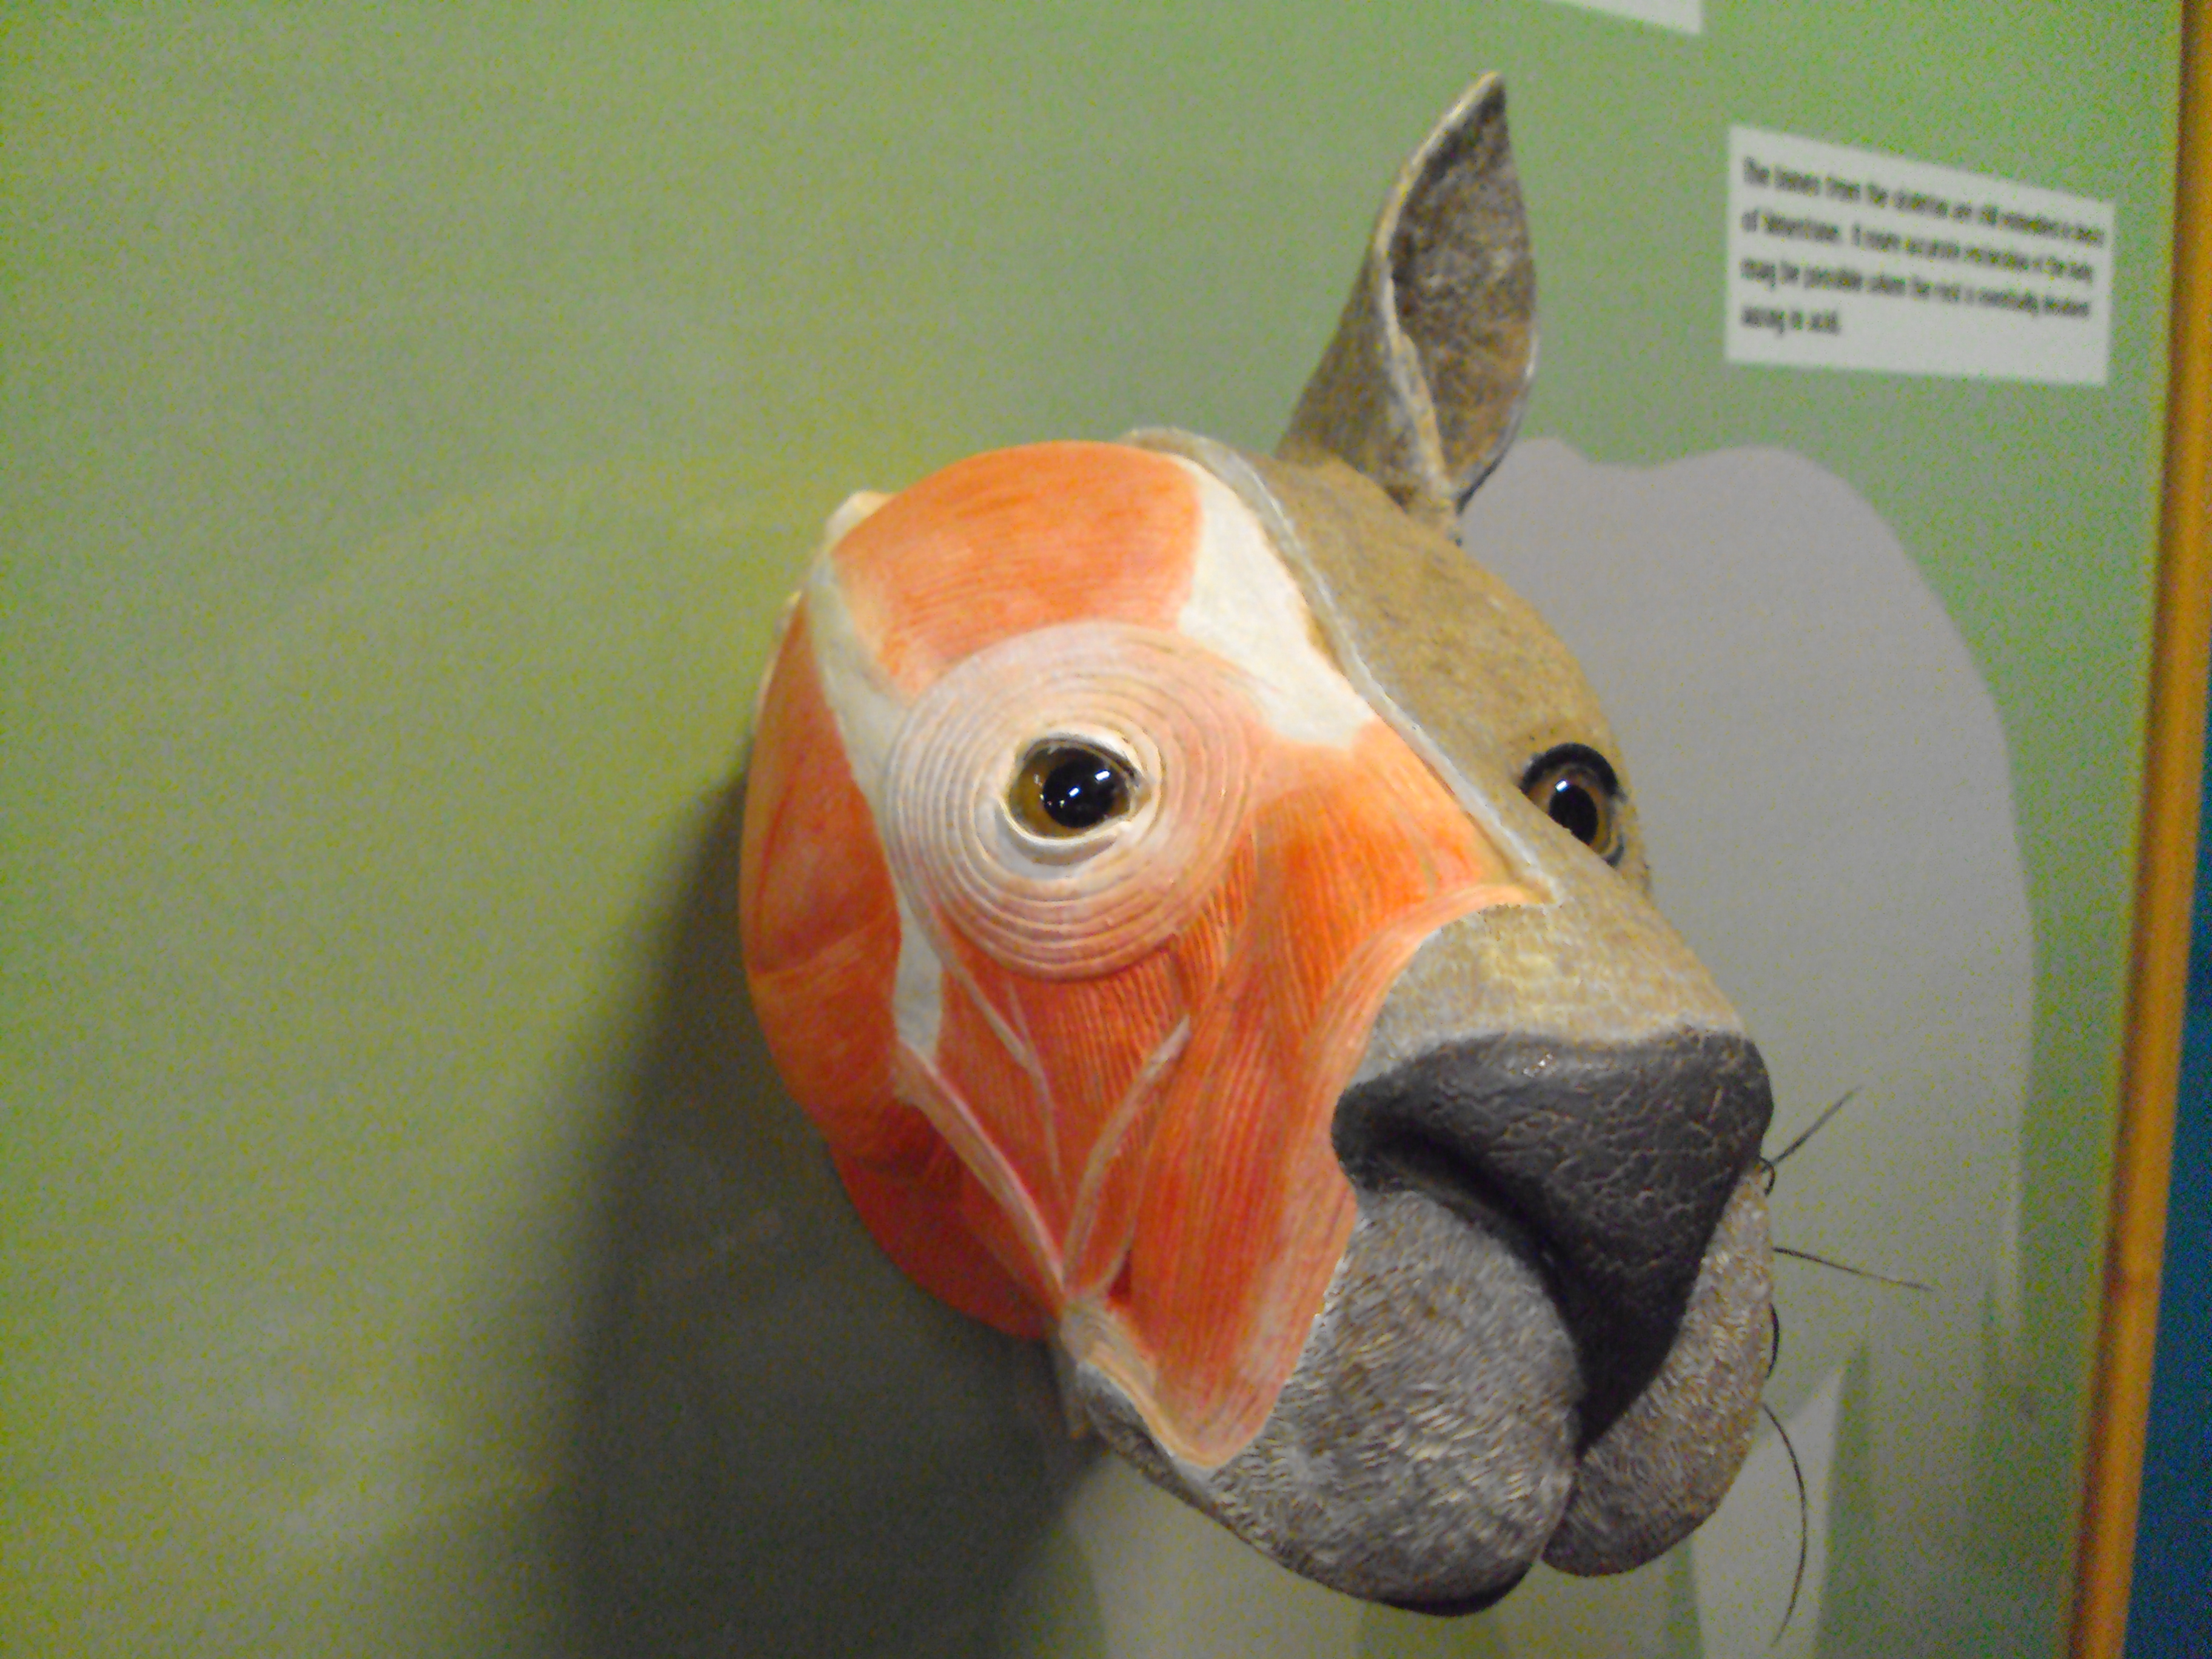 The Great Fish River museum